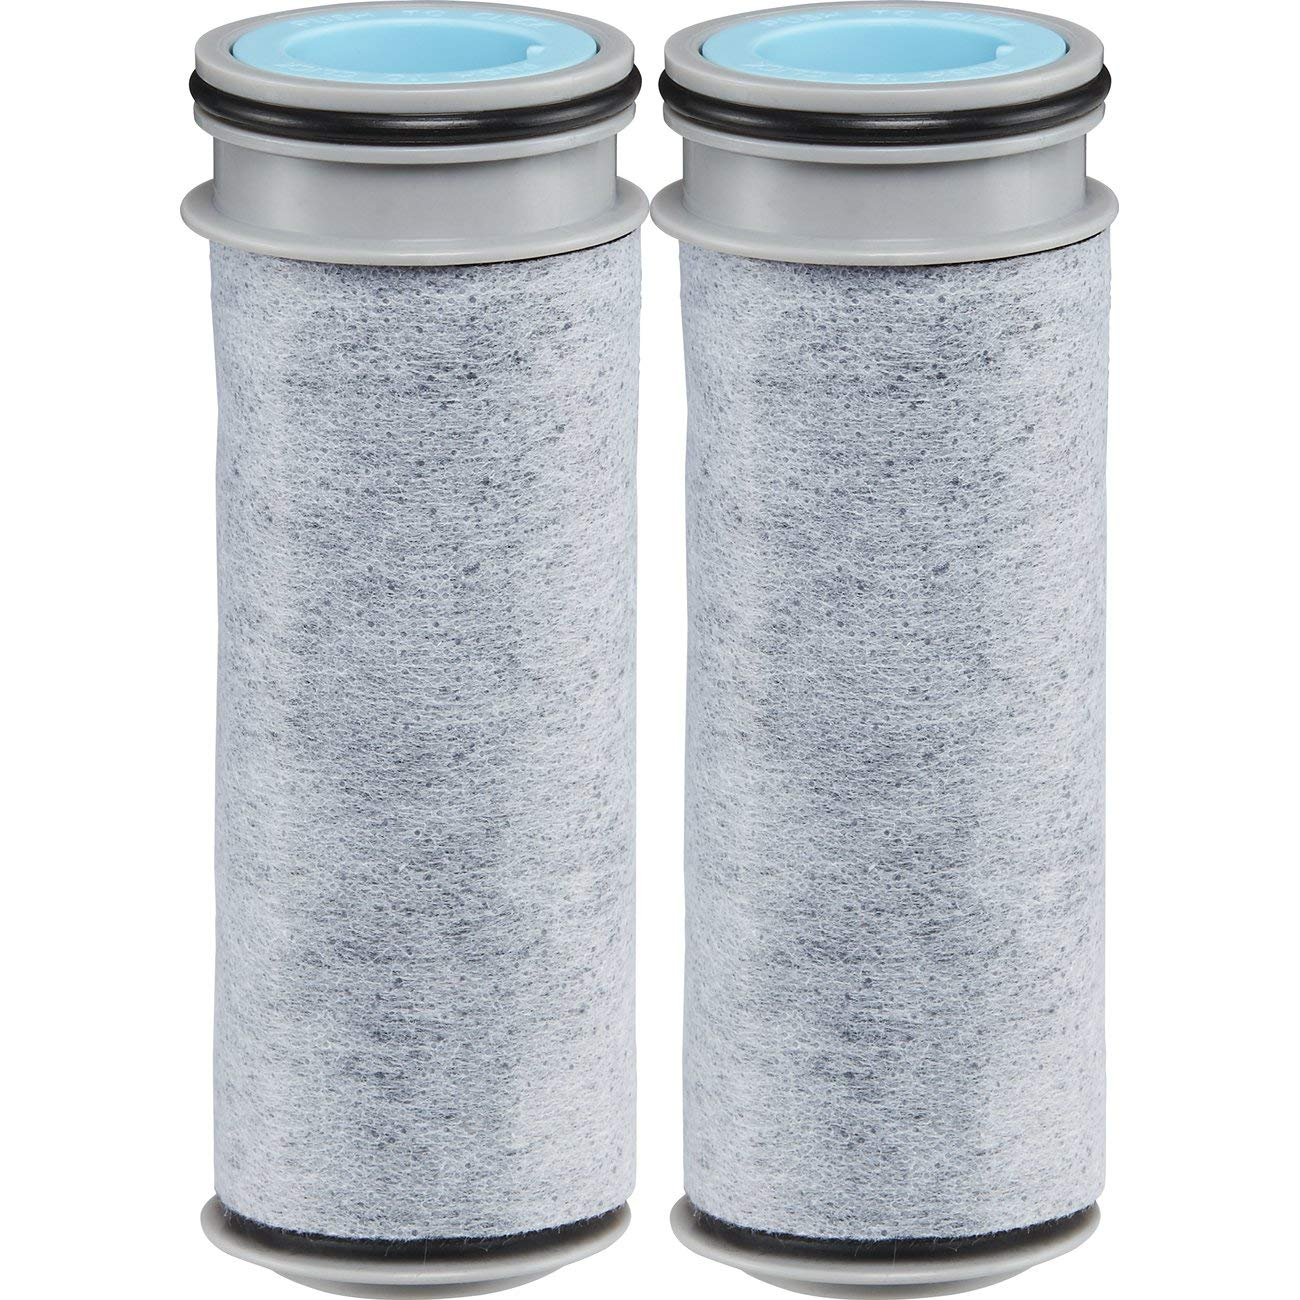 Brita 36241 Stream Replacement Filters, GRAY by Brita